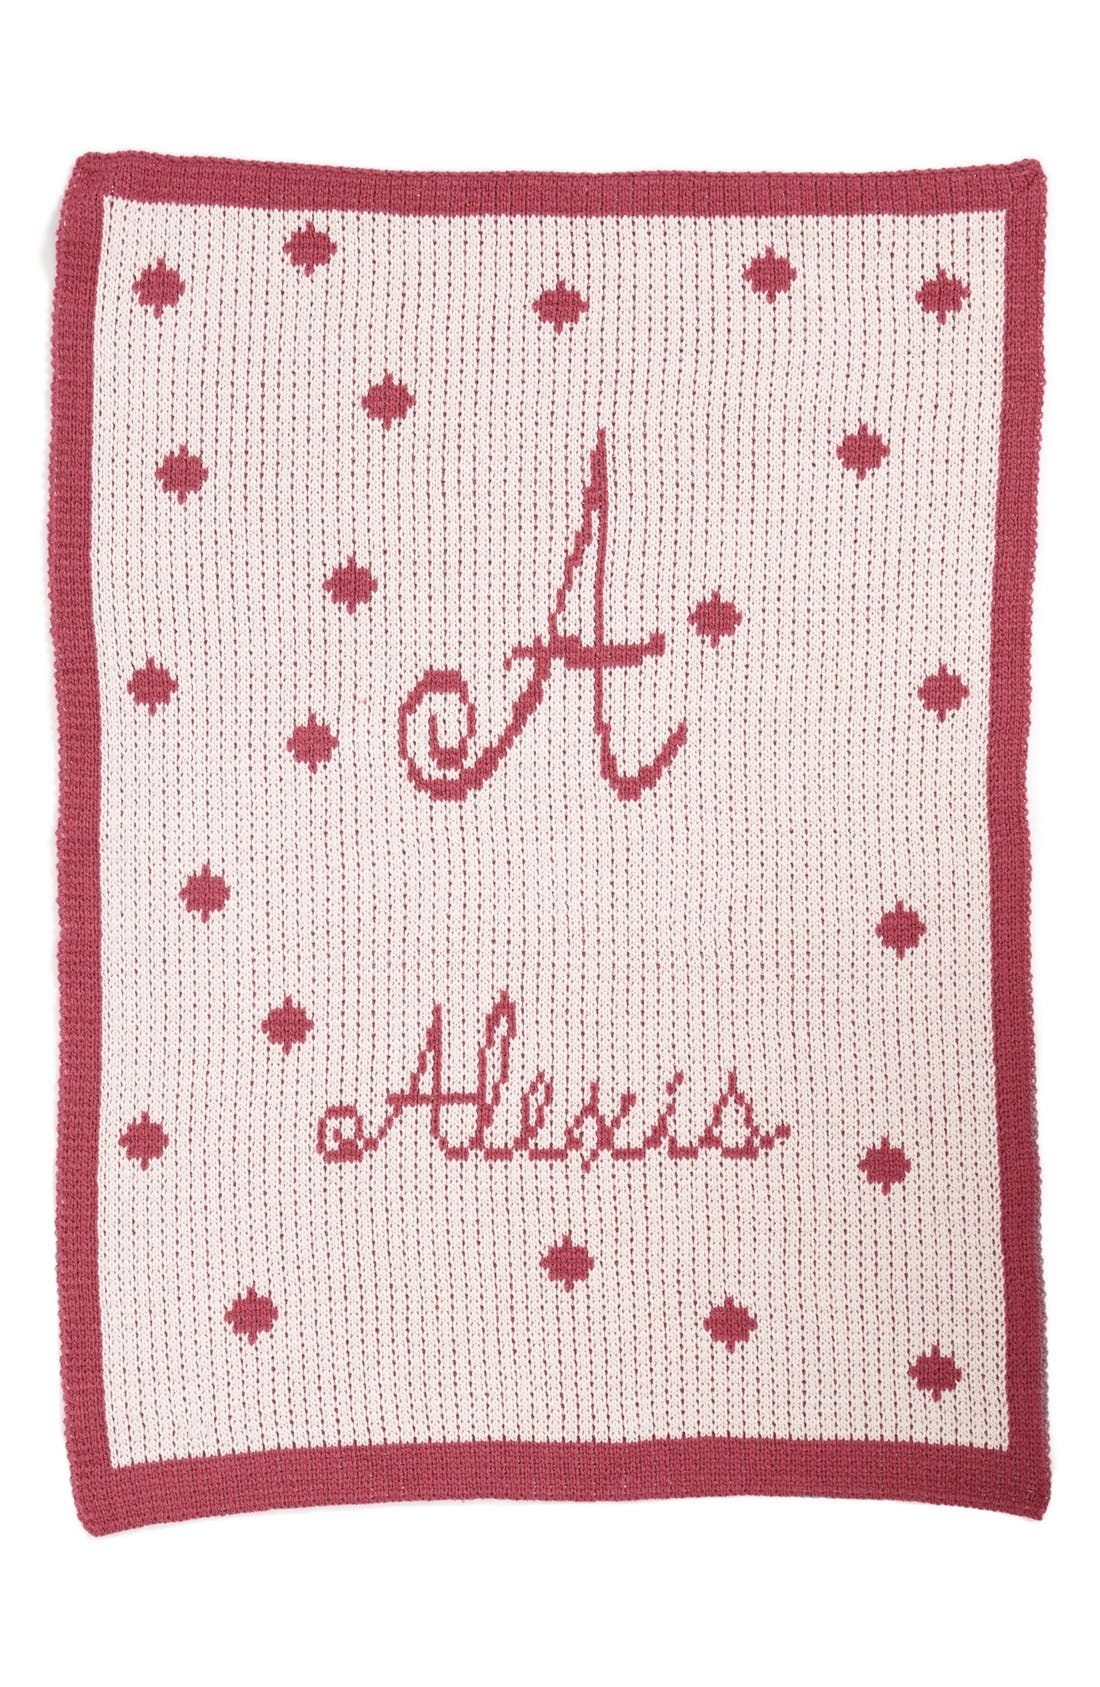 'Polka Dots - Large' Personalized Stroller Blanket,                         Main,                         color, Pale Pink/ Mulberry